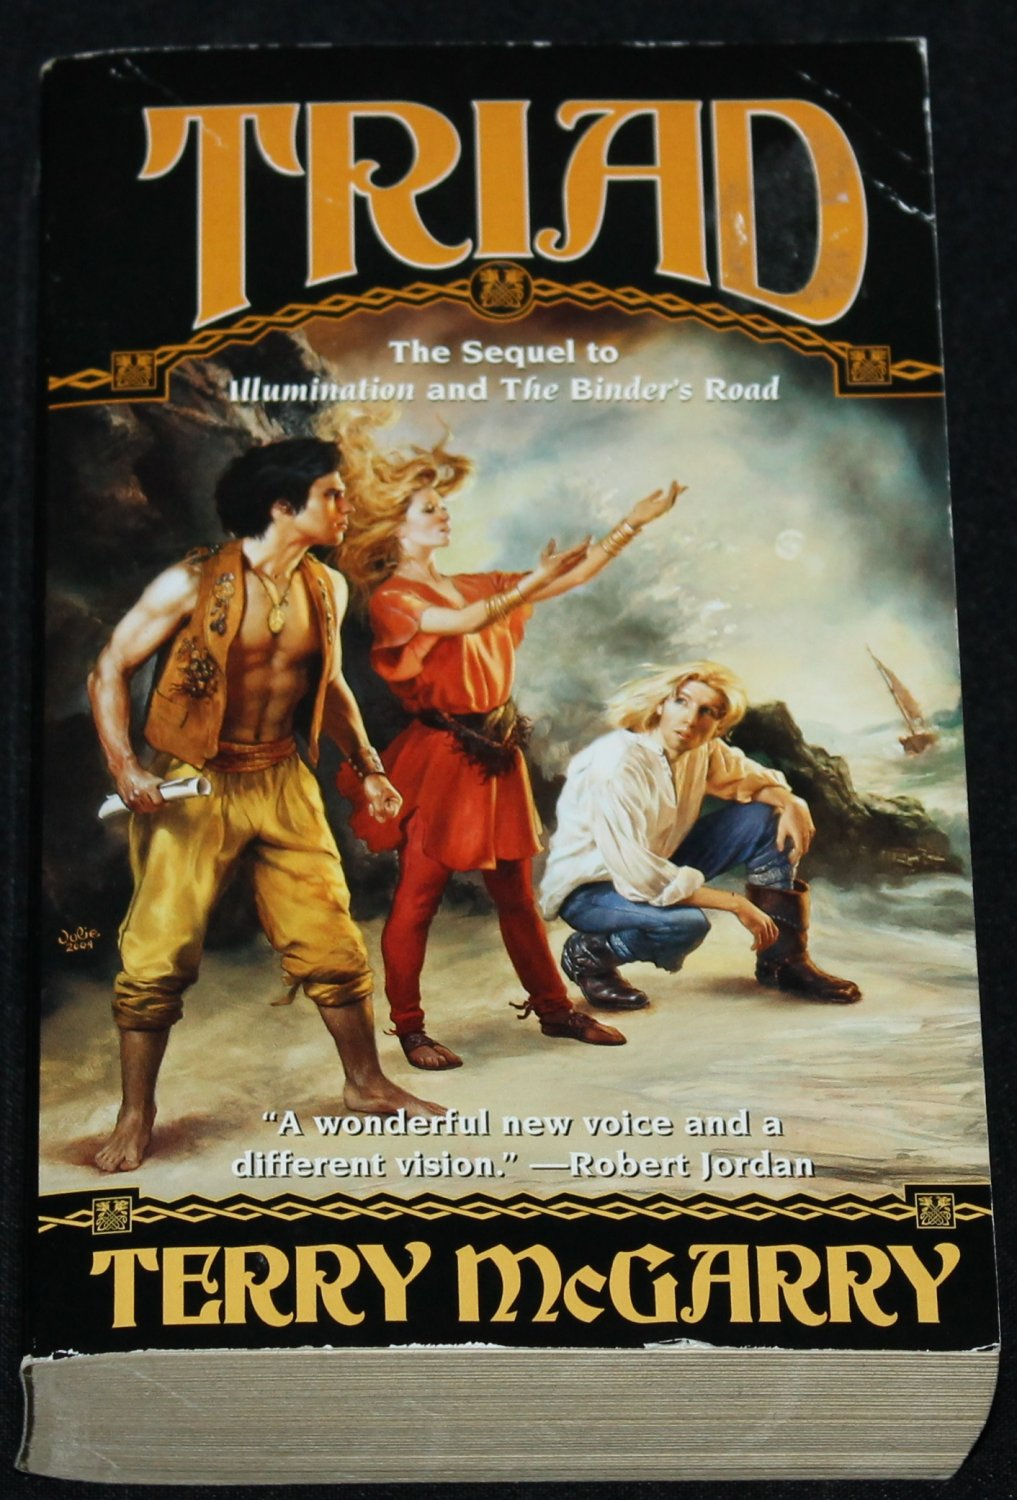 Triad by Terry McGarry fantasy adventure novel paperback book